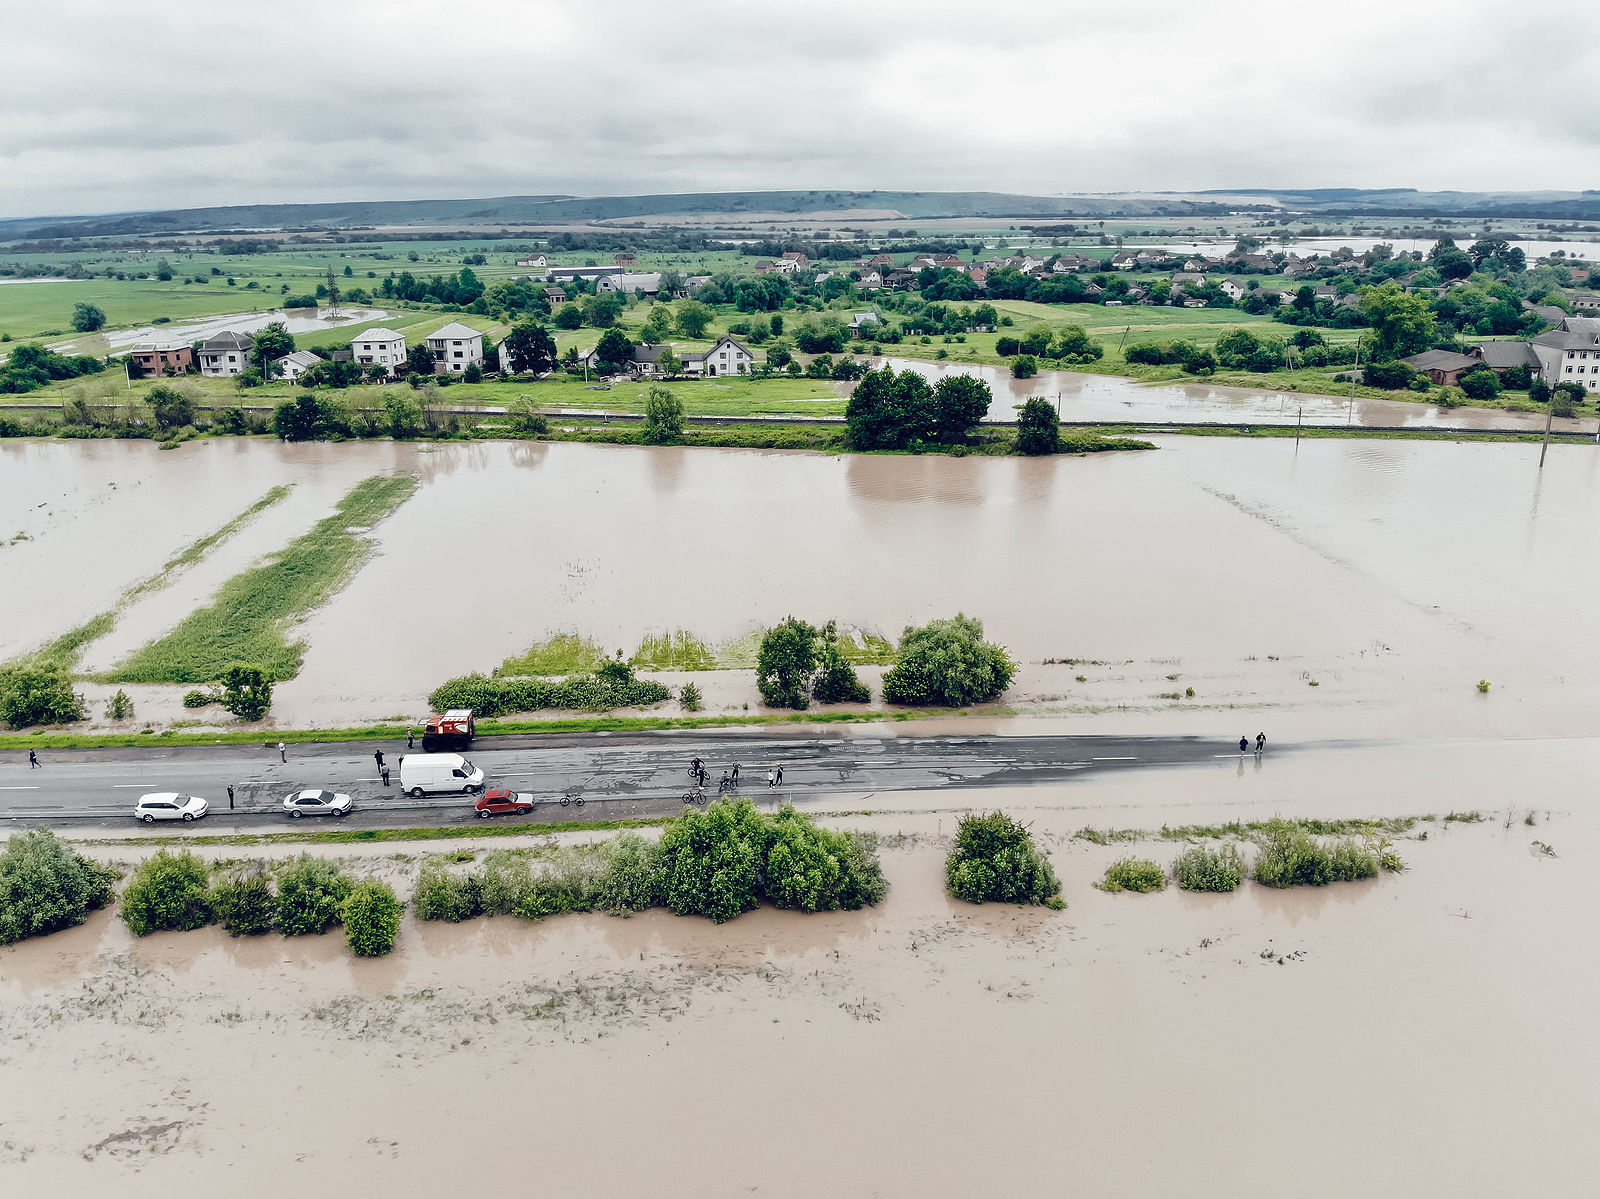 Aerial View Of The Flooded Streets And Houses In The City. Globa